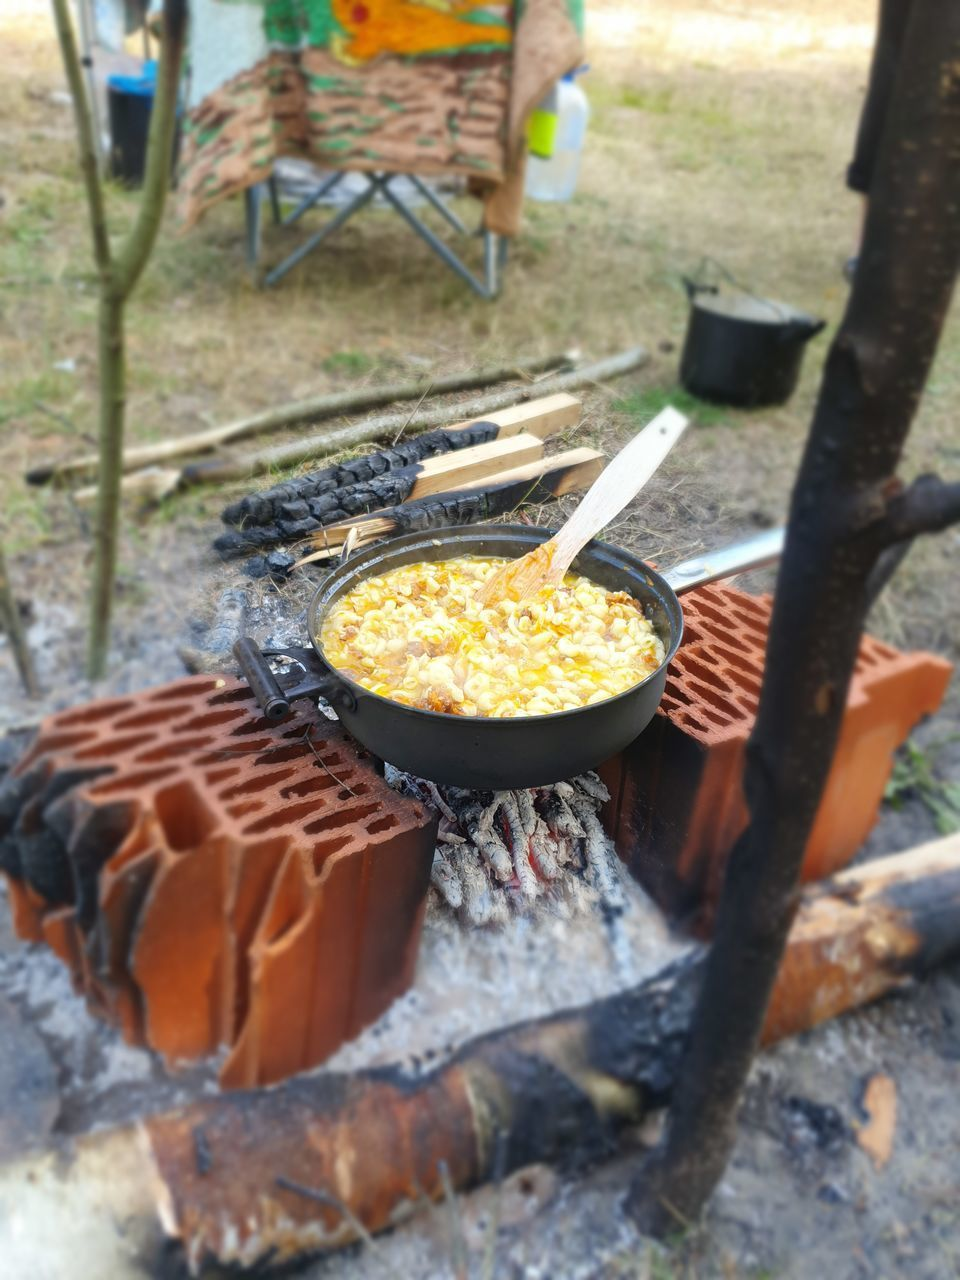 food, food and drink, kitchen utensil, preparation, barbecue, day, no people, heat - temperature, outdoors, barbecue grill, preparing food, selective focus, nature, meat, freshness, metal, high angle view, close-up, front or back yard, burning